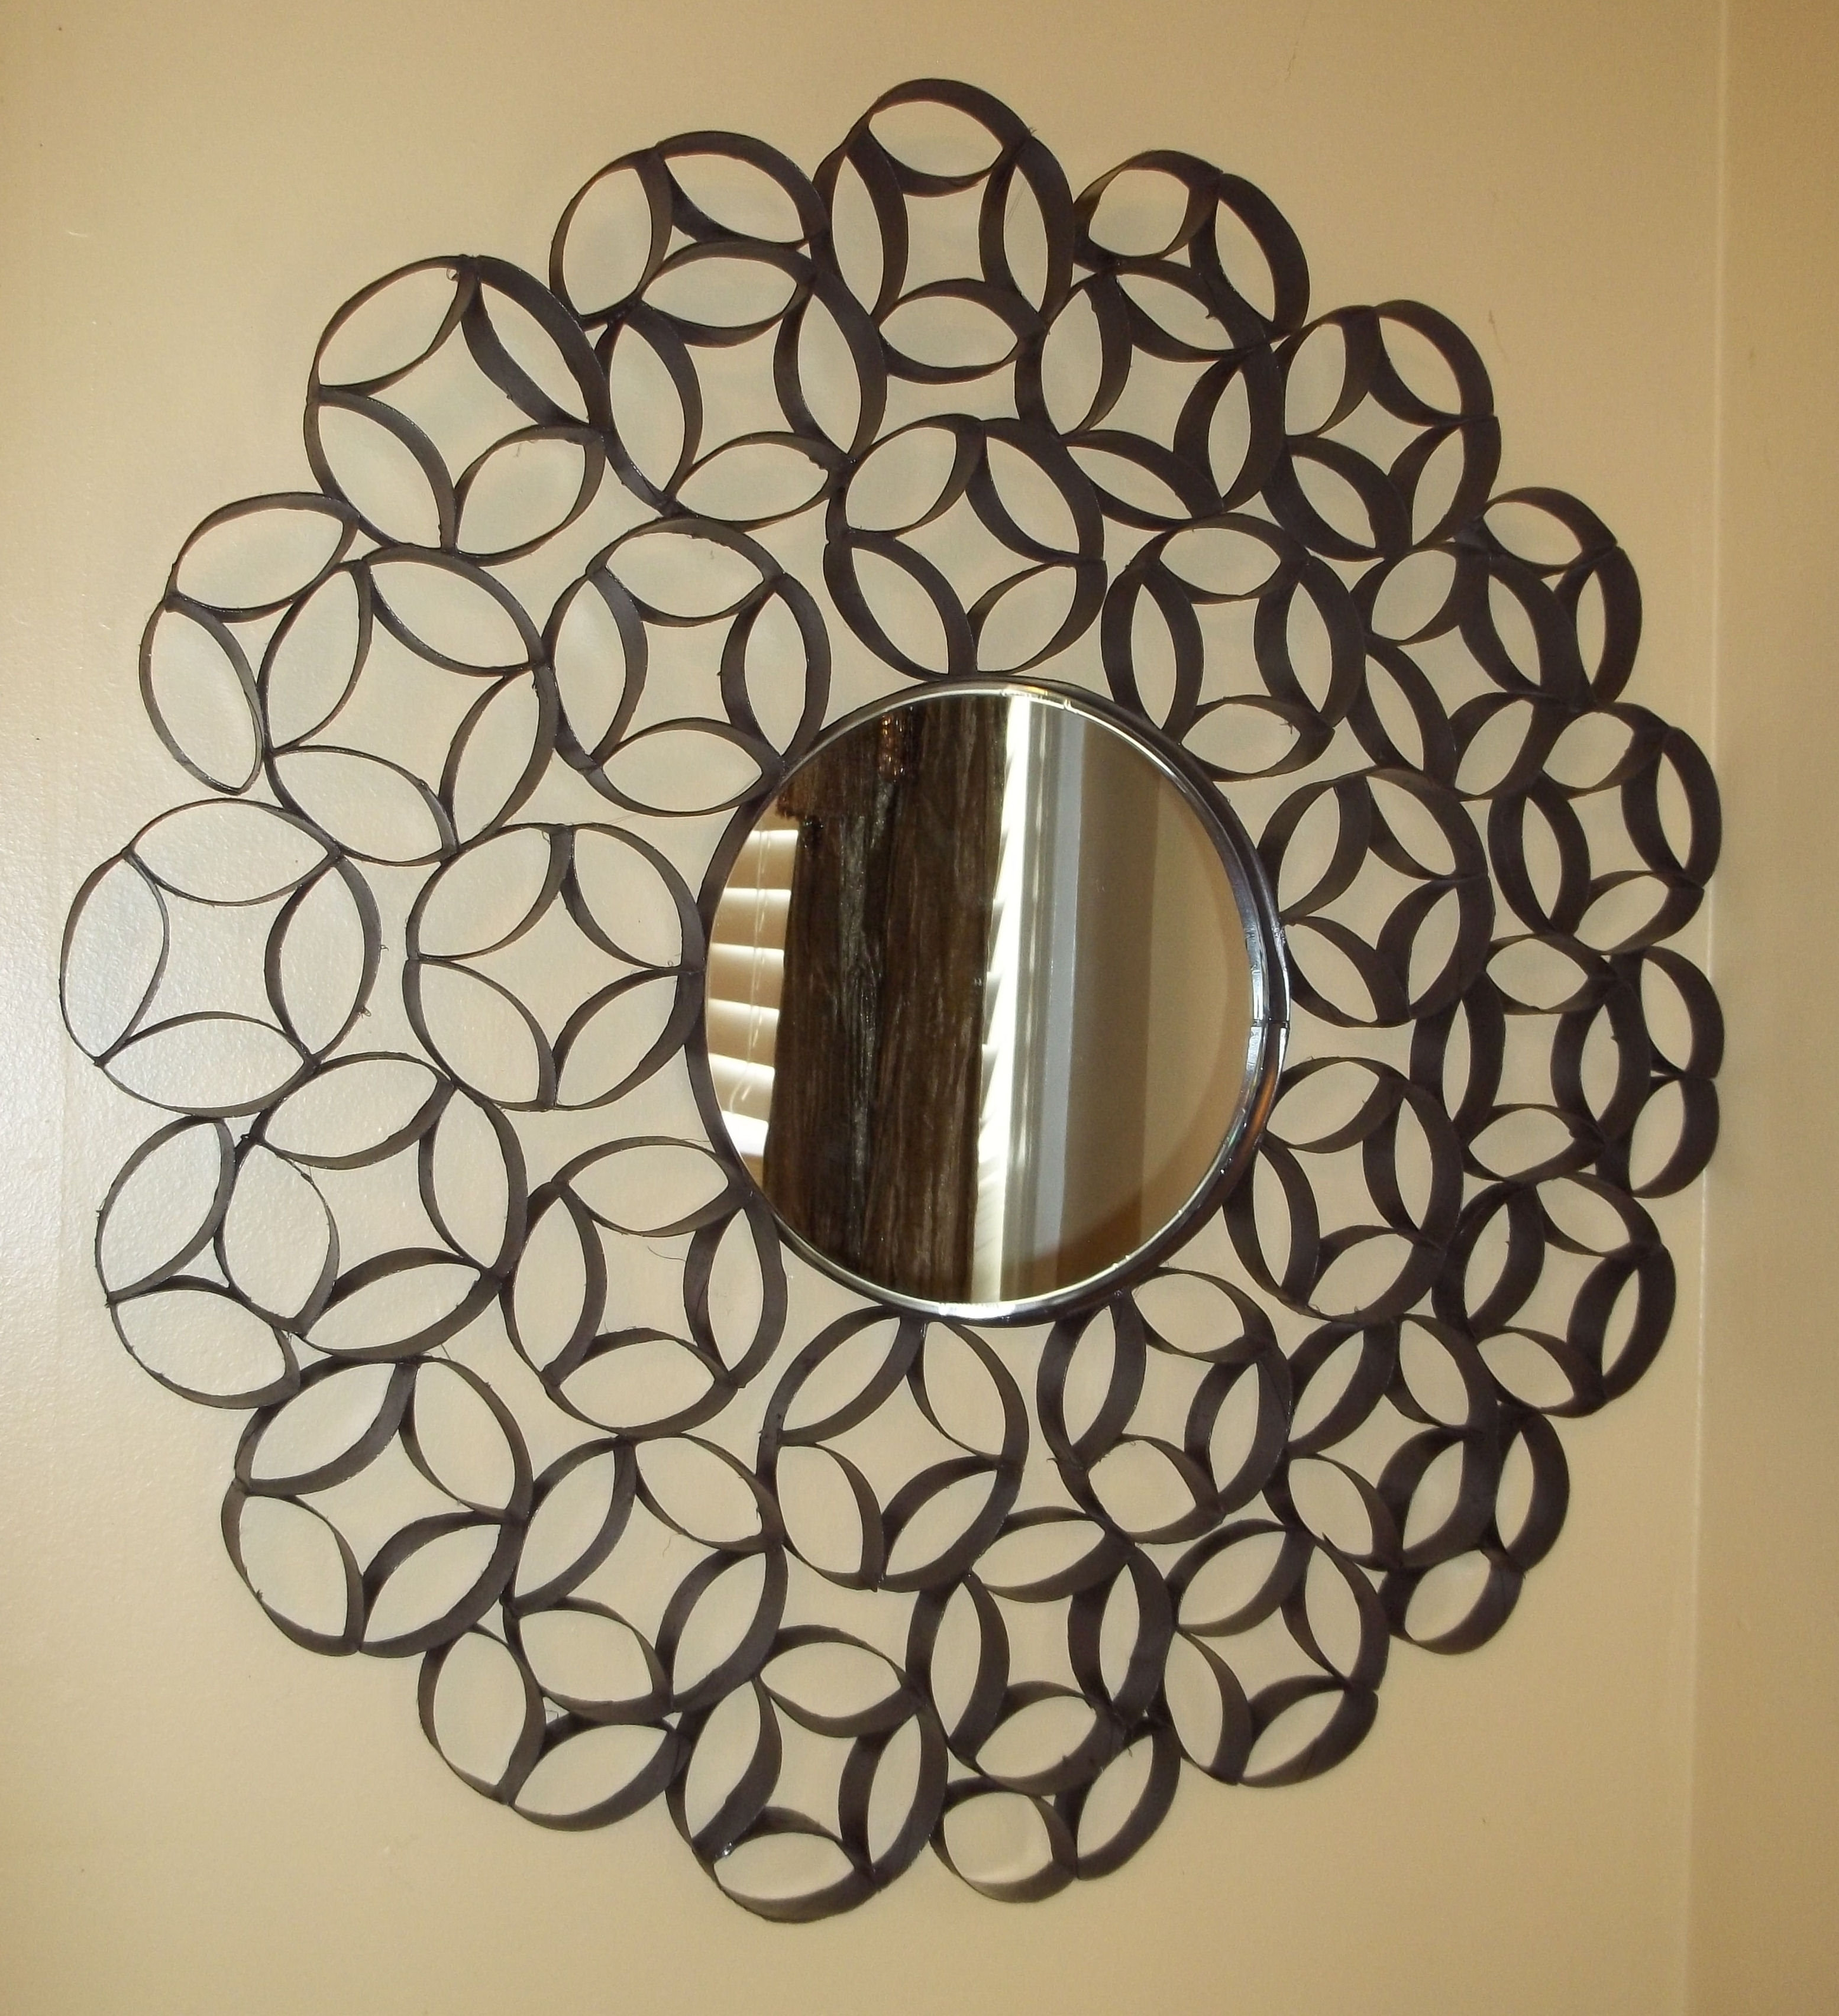 Toilet Paper Roll Wall Art Decor | She Crafts Alot Shop Inside Most Recently Released Toilet Paper Roll Wall Art (View 12 of 20)